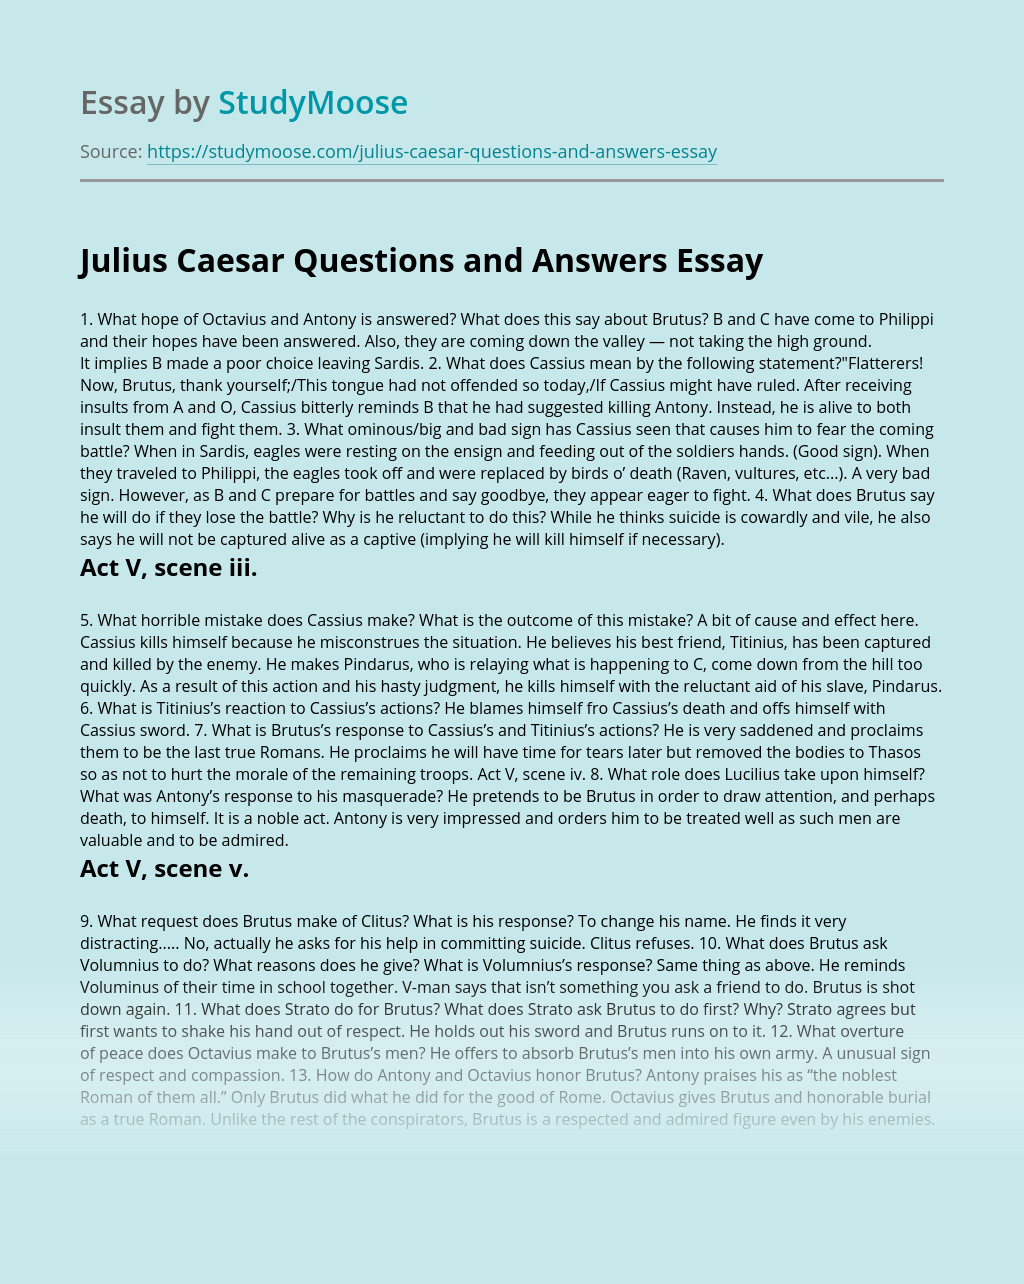 Julius Caesar Questions and Answers